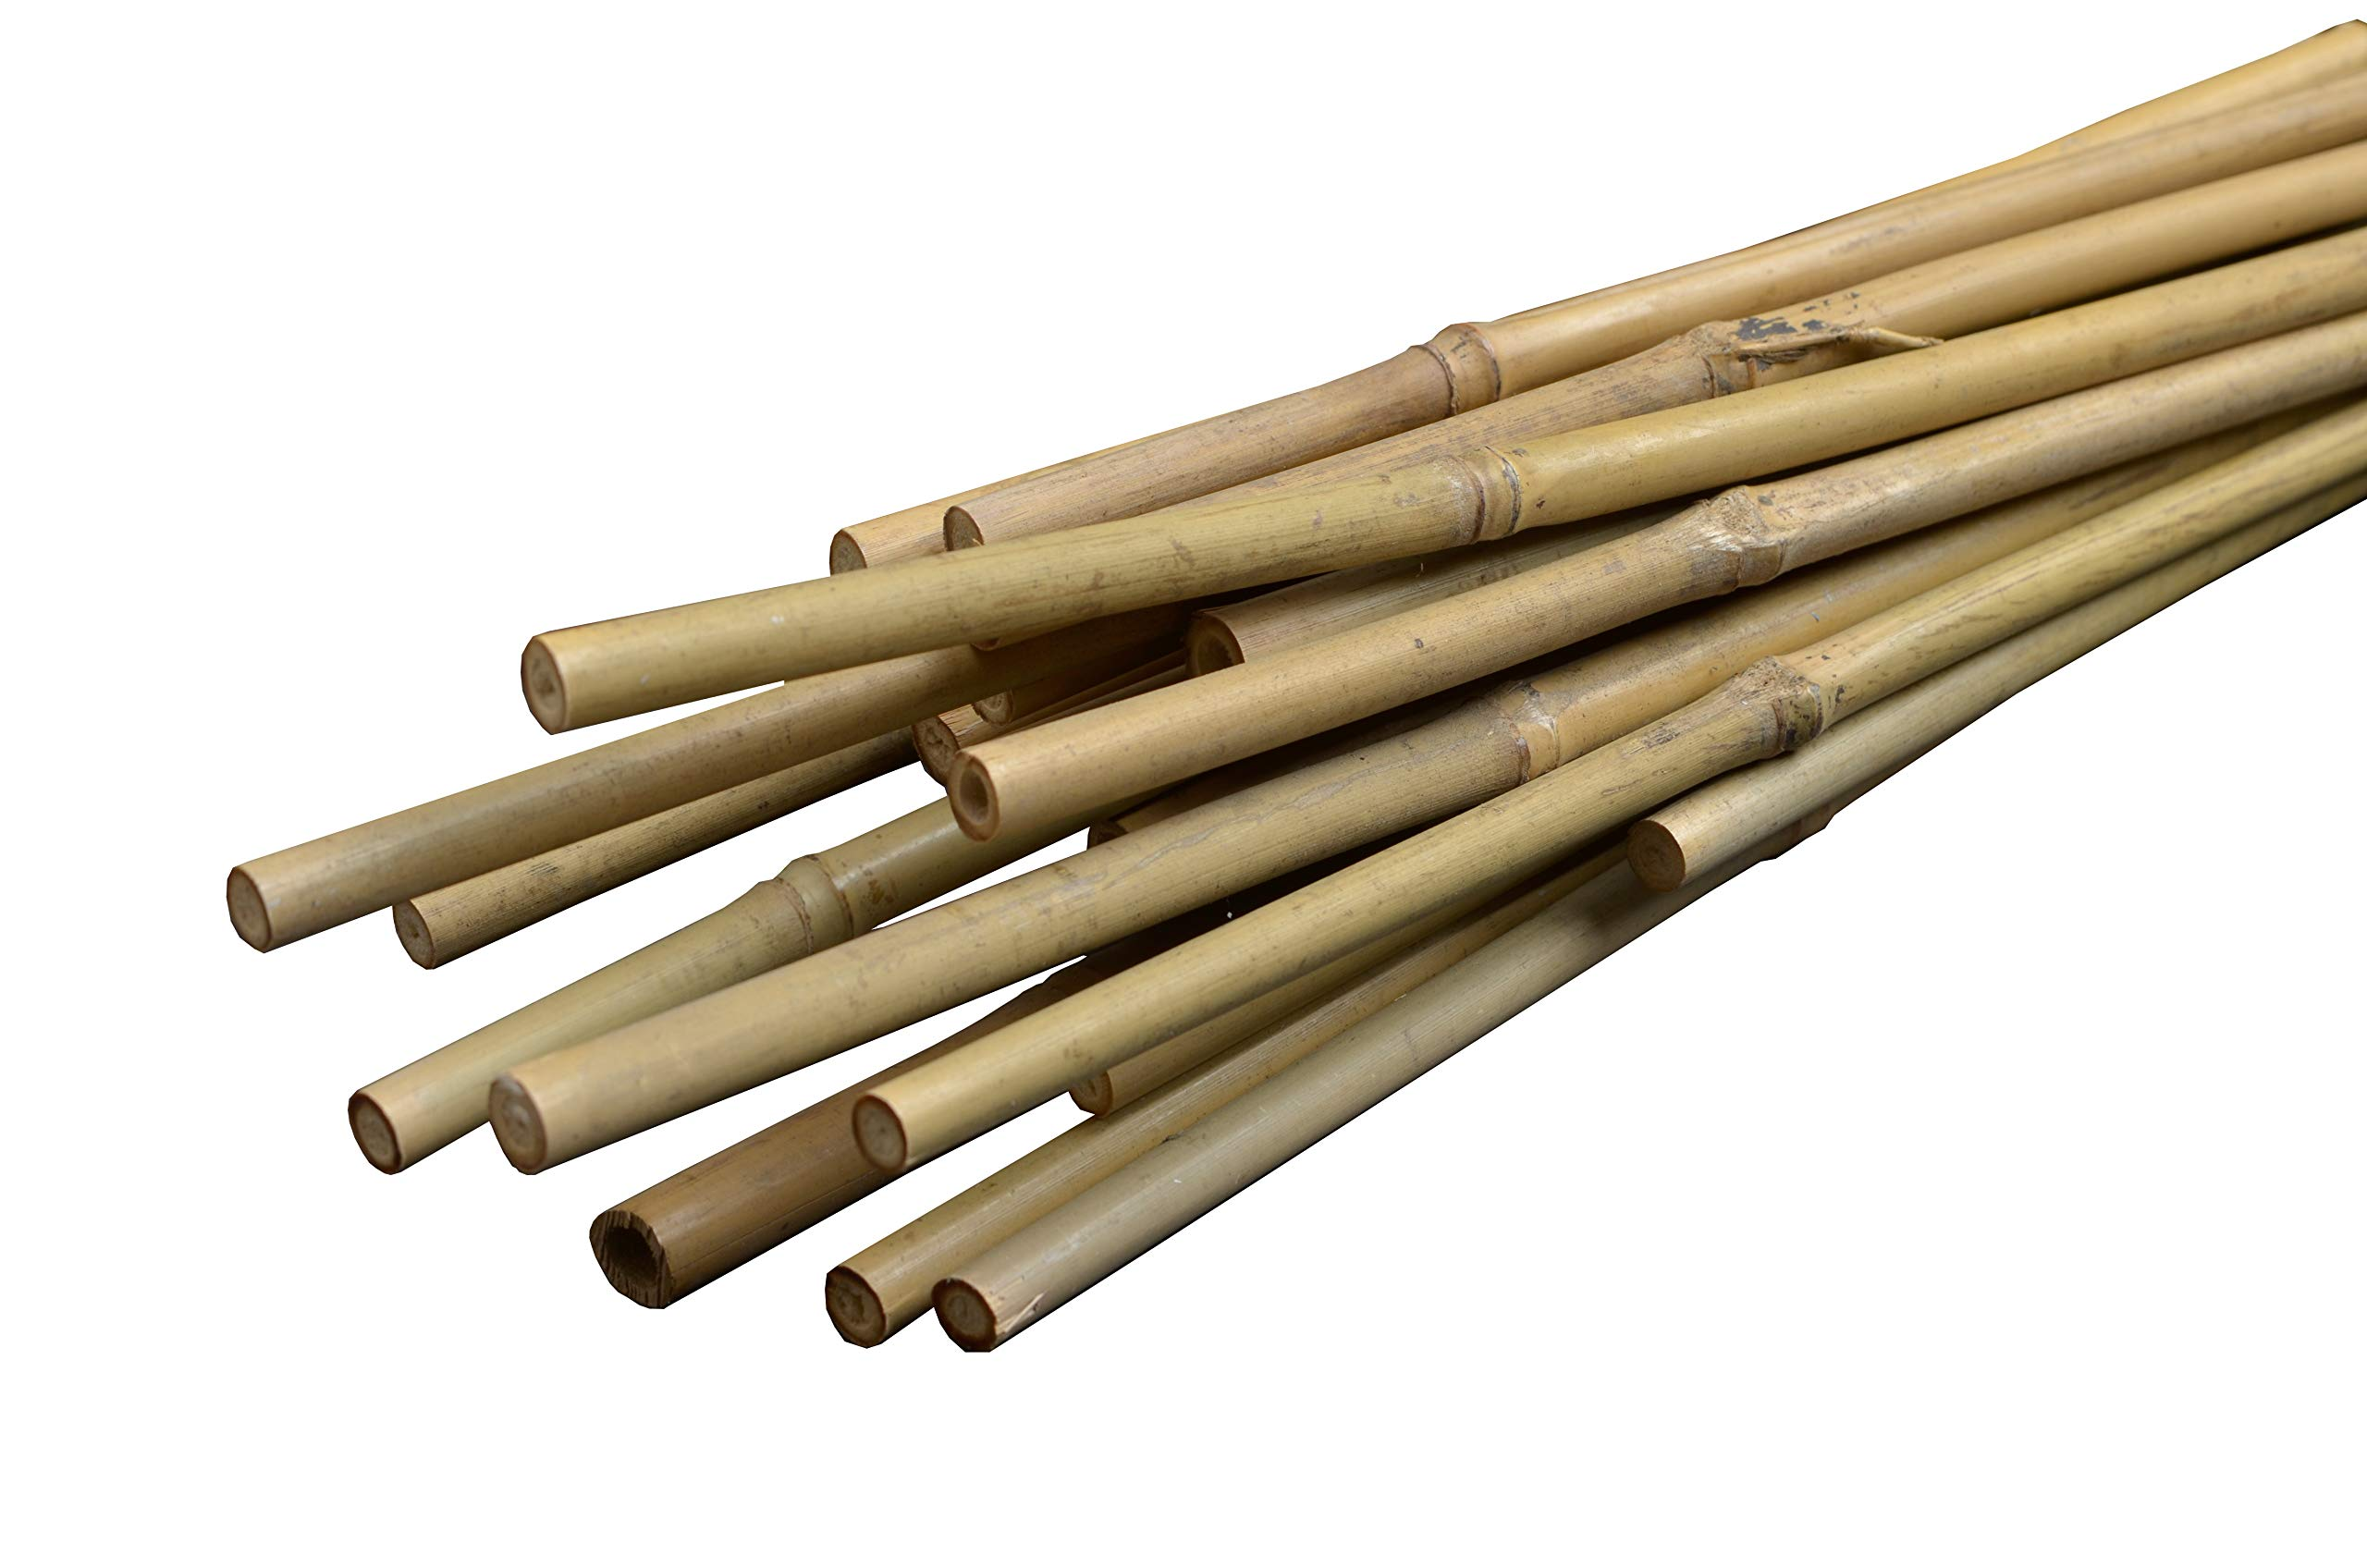 Bond Manufacturing N818 8-ft x 3/4-in Diameter Bamboo Stakes, 100-pack, 3/4'', Natural